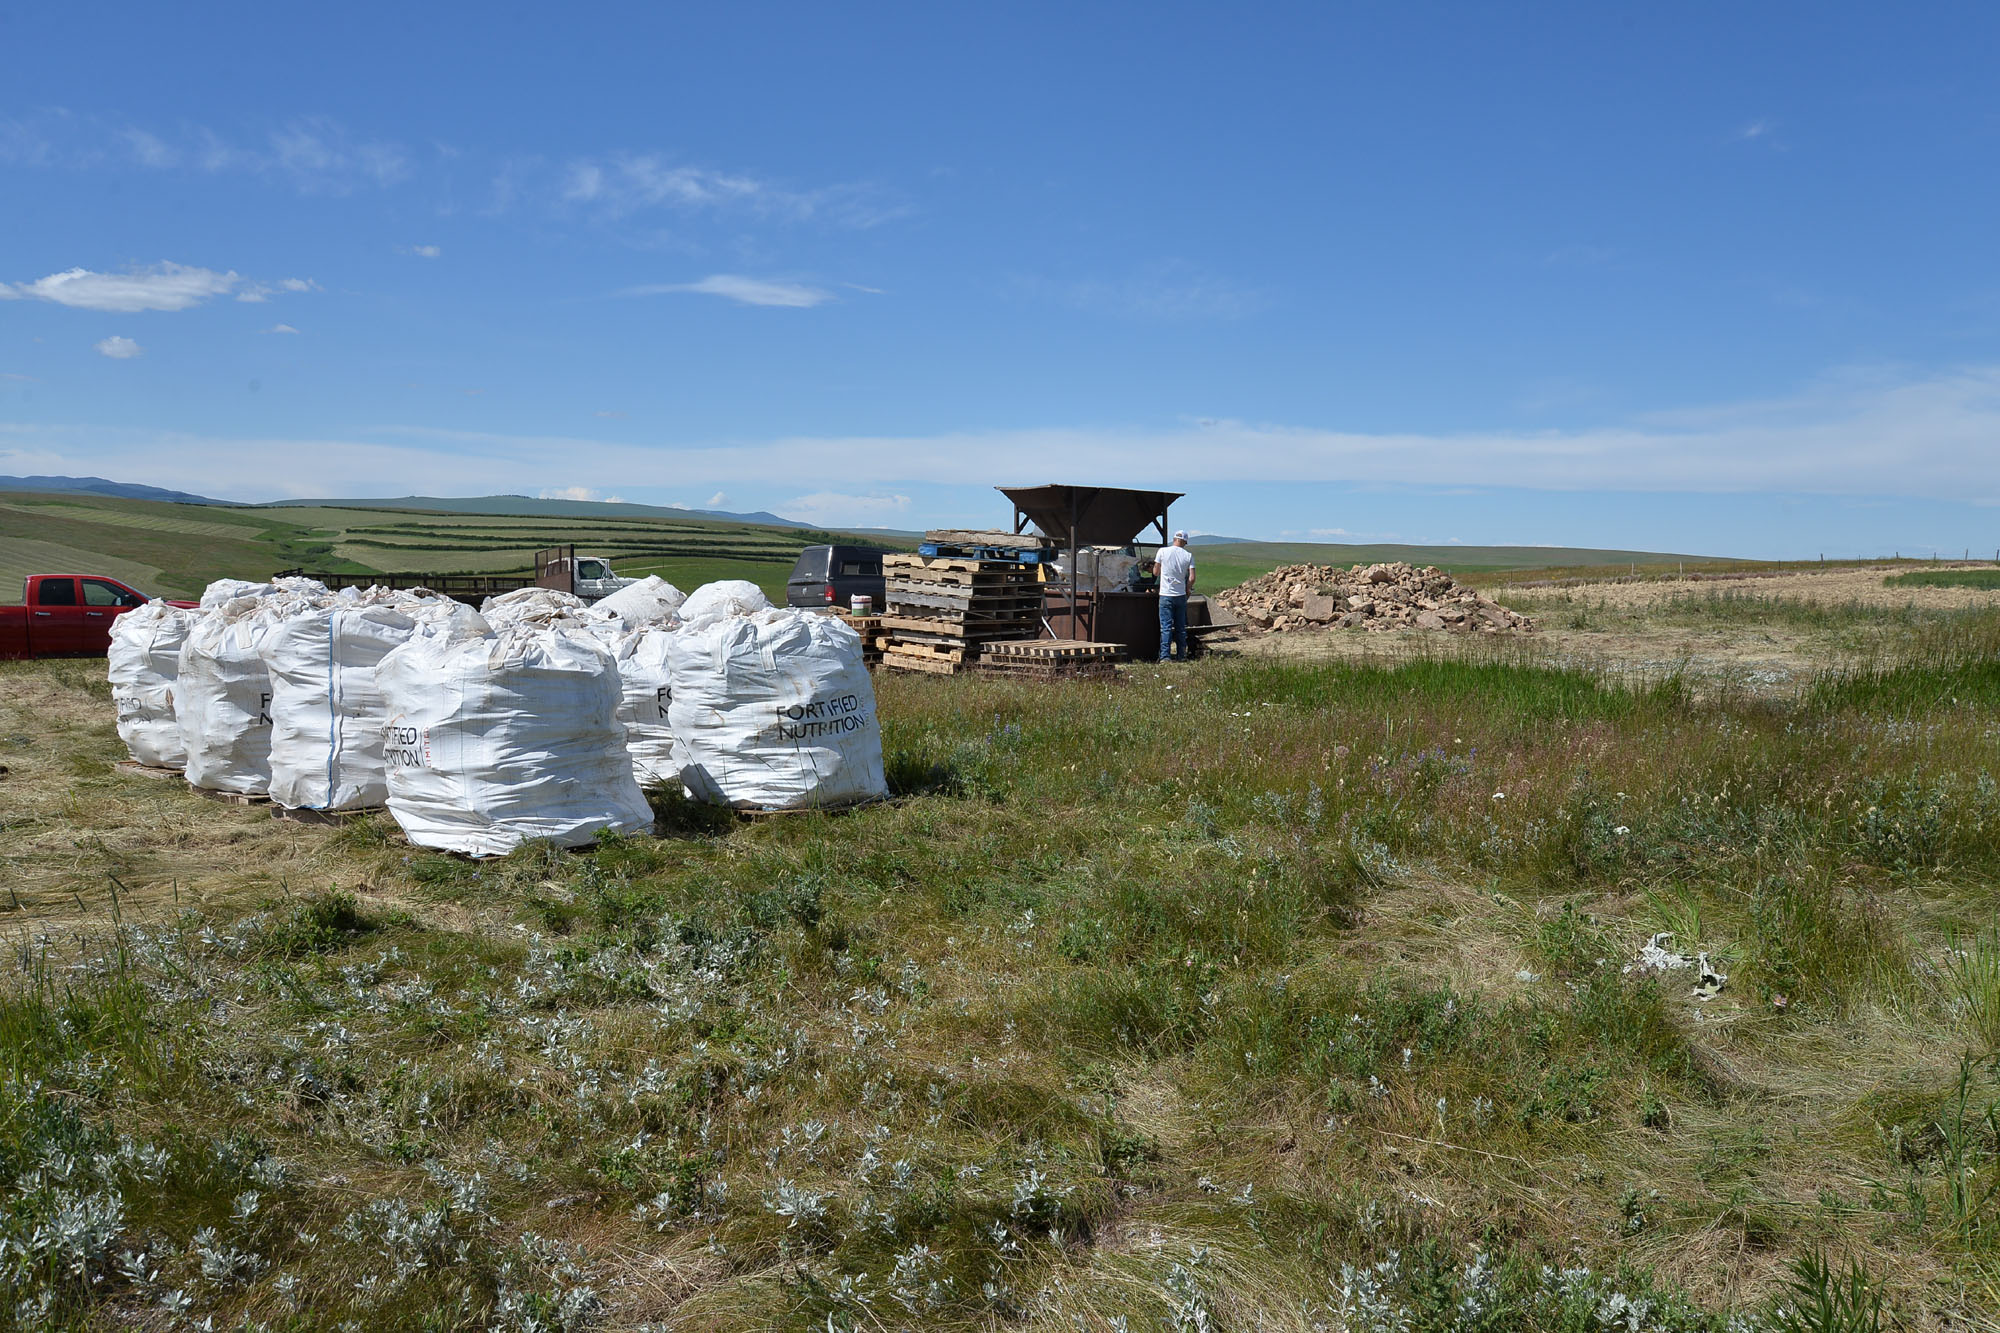 From the fields, the raw stone is brought to our processing area in bags.